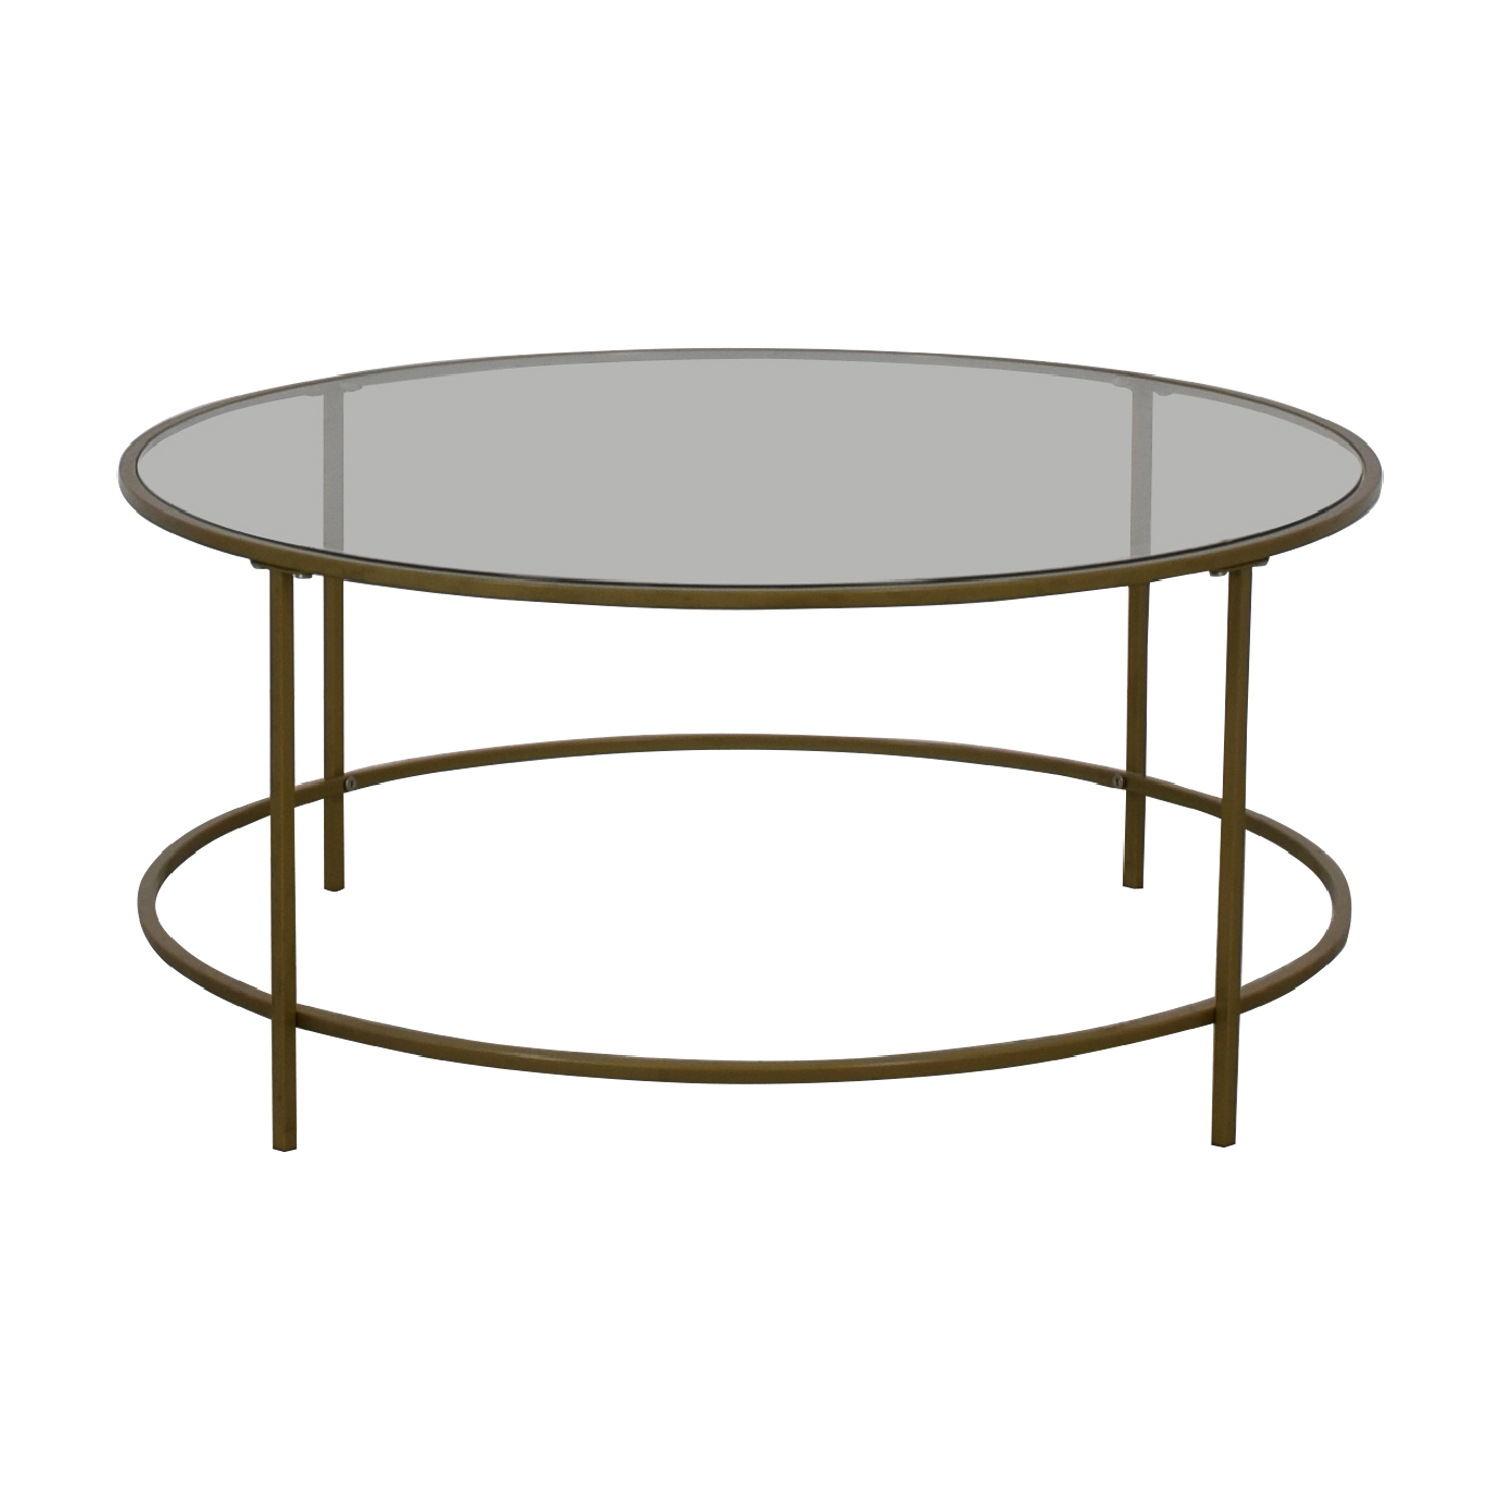 Wayfair Wayfair Glass and Brass Coffee Table second hand